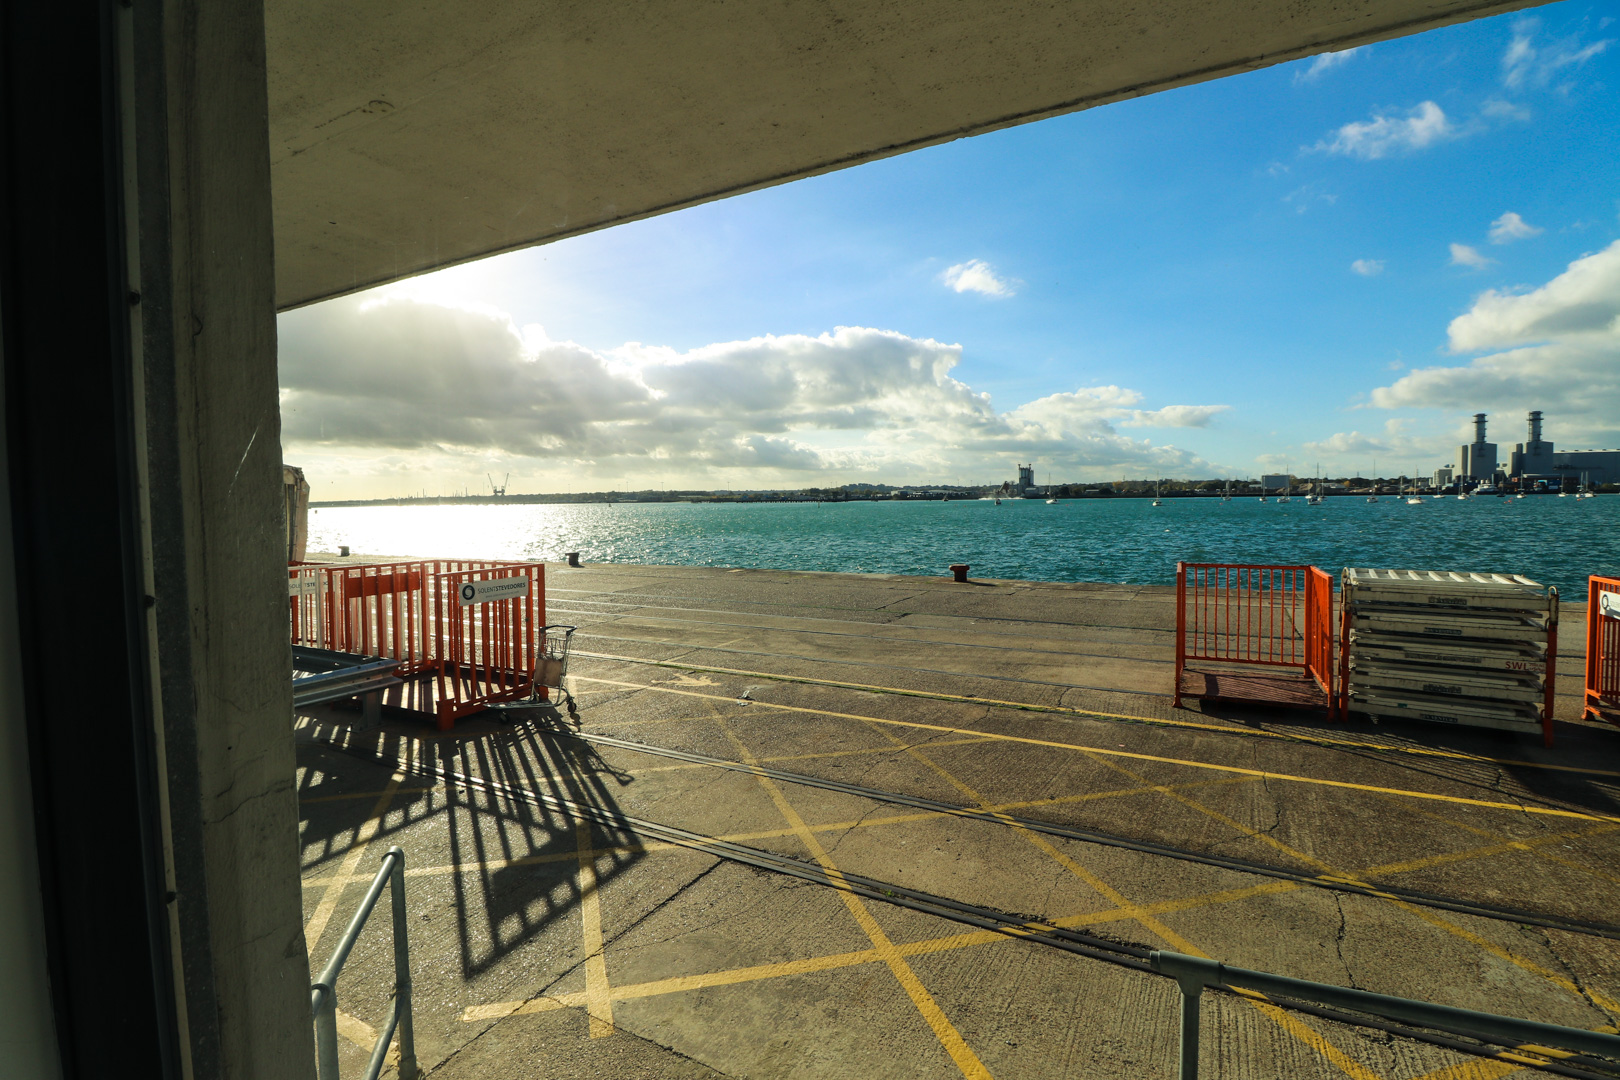 Views over the Solent provide the backdrop to a momentous rehearsal at Mayflower Cruise Terminal.